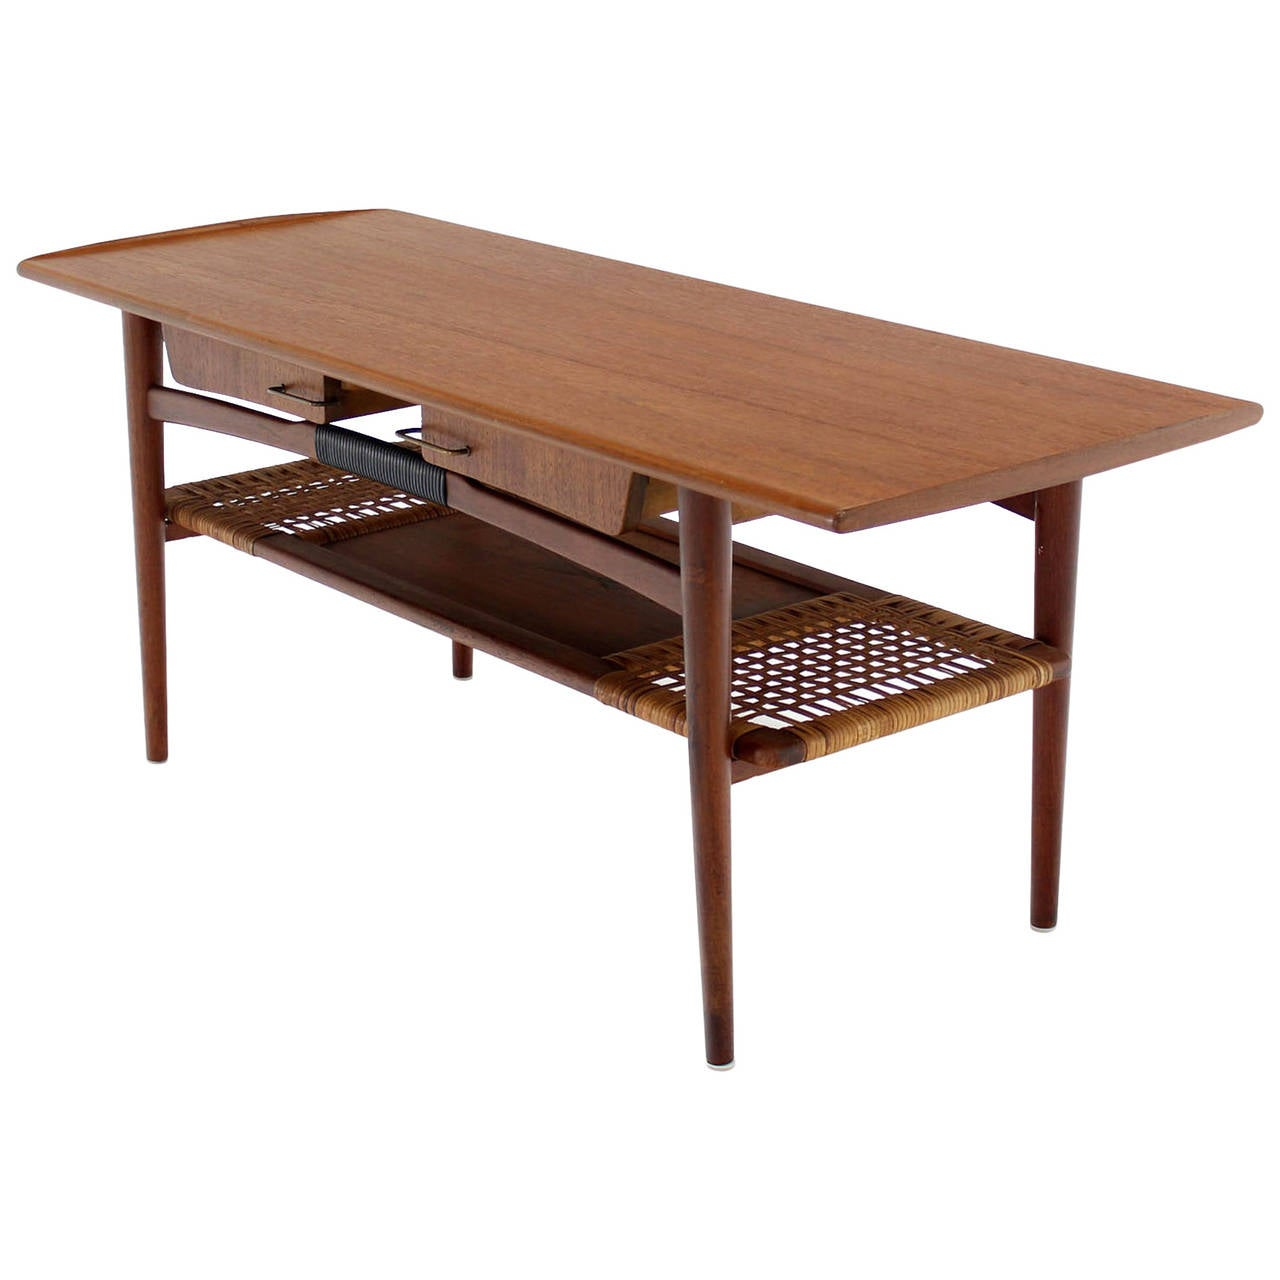 Danish modern teak coffee table cane shelf rolled edges 4 storage drawers for sale at 1stdibs Coffee table with shelf